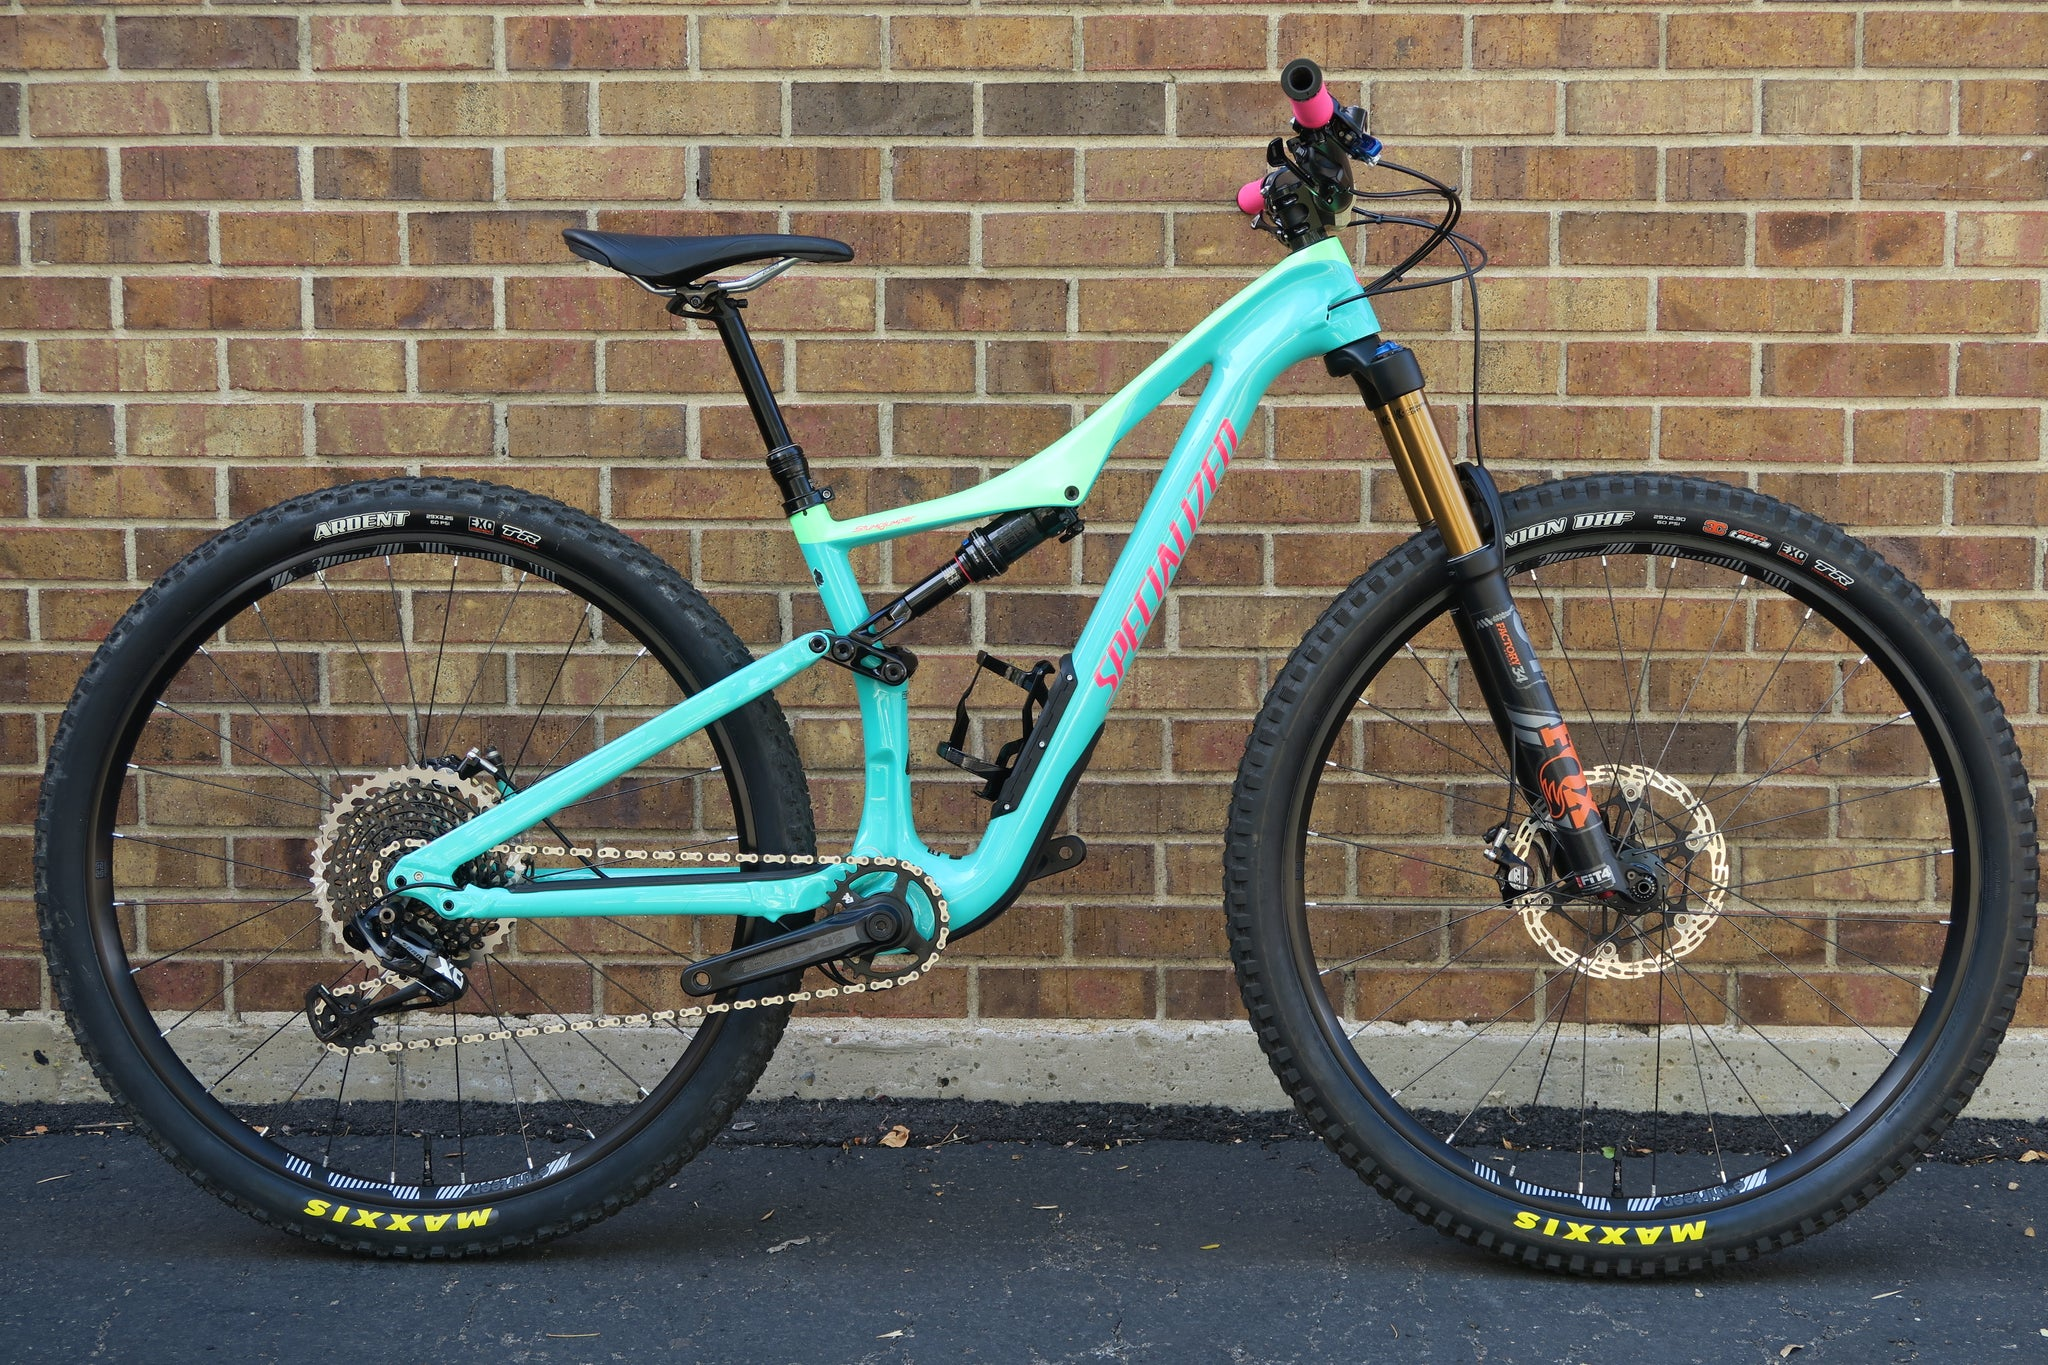 2018 SPECIALIZED STUMPJUMPER EXPERT 29